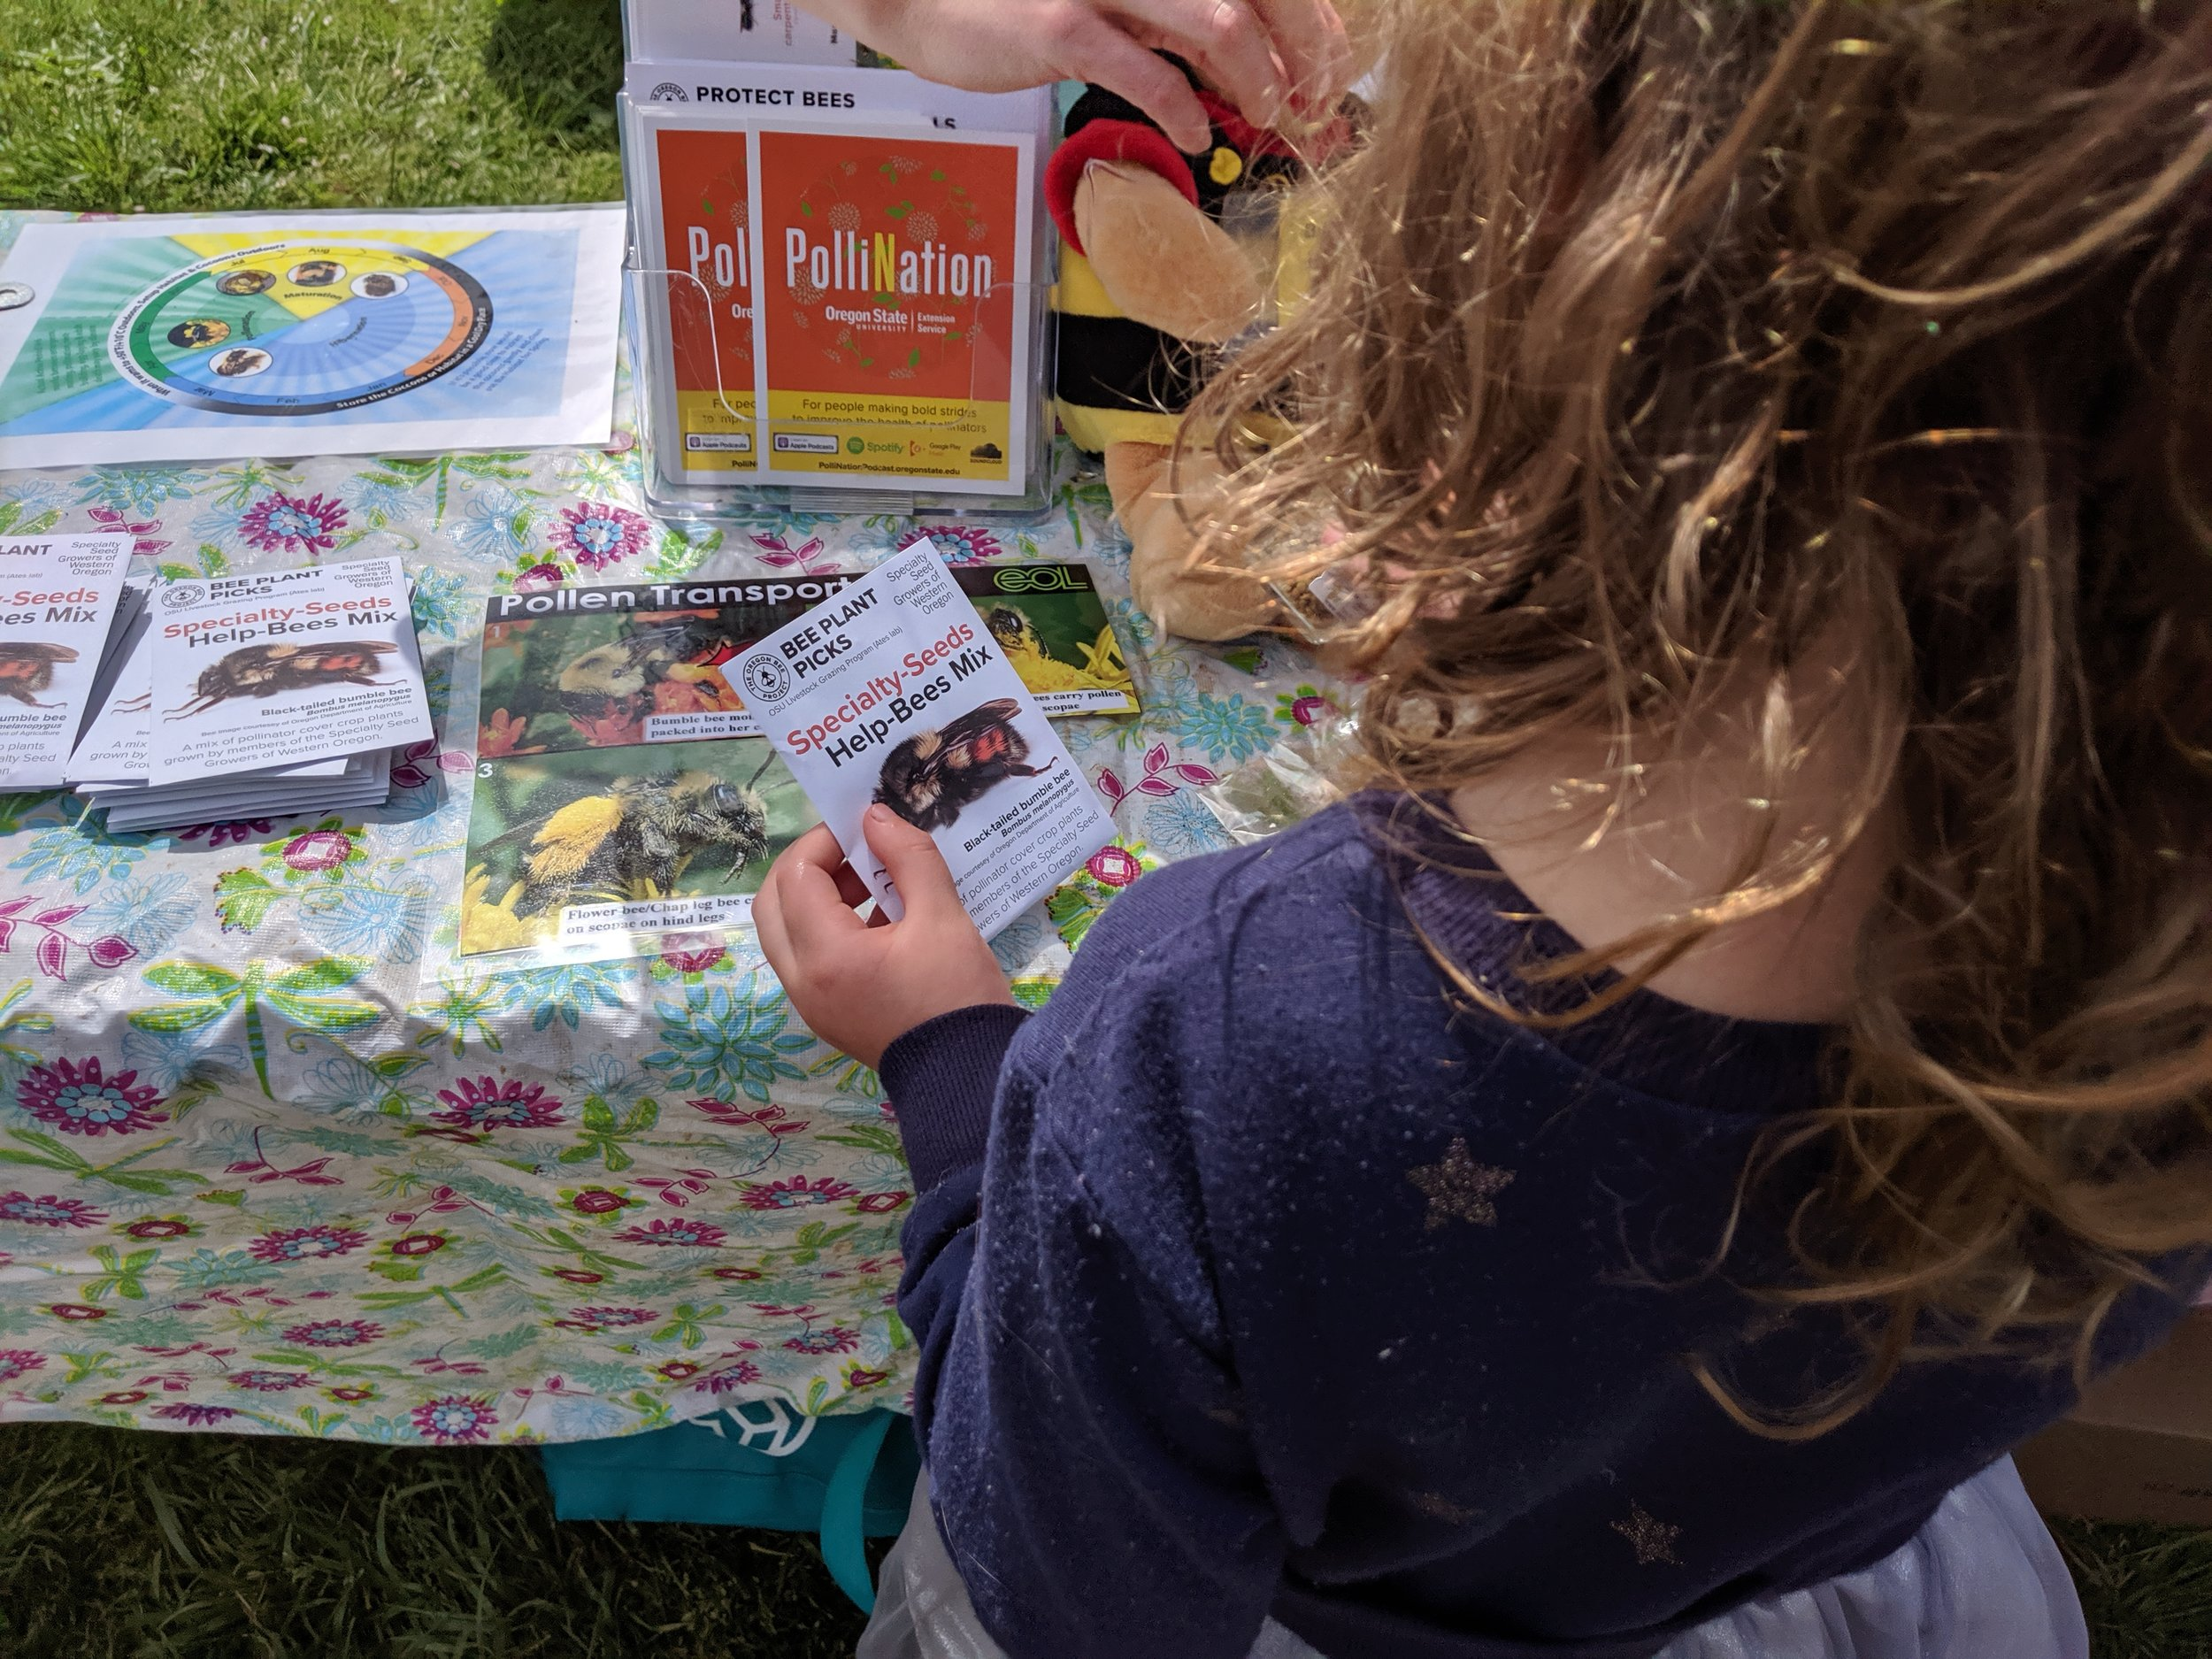 Seed pack being distributed at the Metro Pollinator Picnic at Howell Territorial Park on Sauvie Island on May 18, 2019.